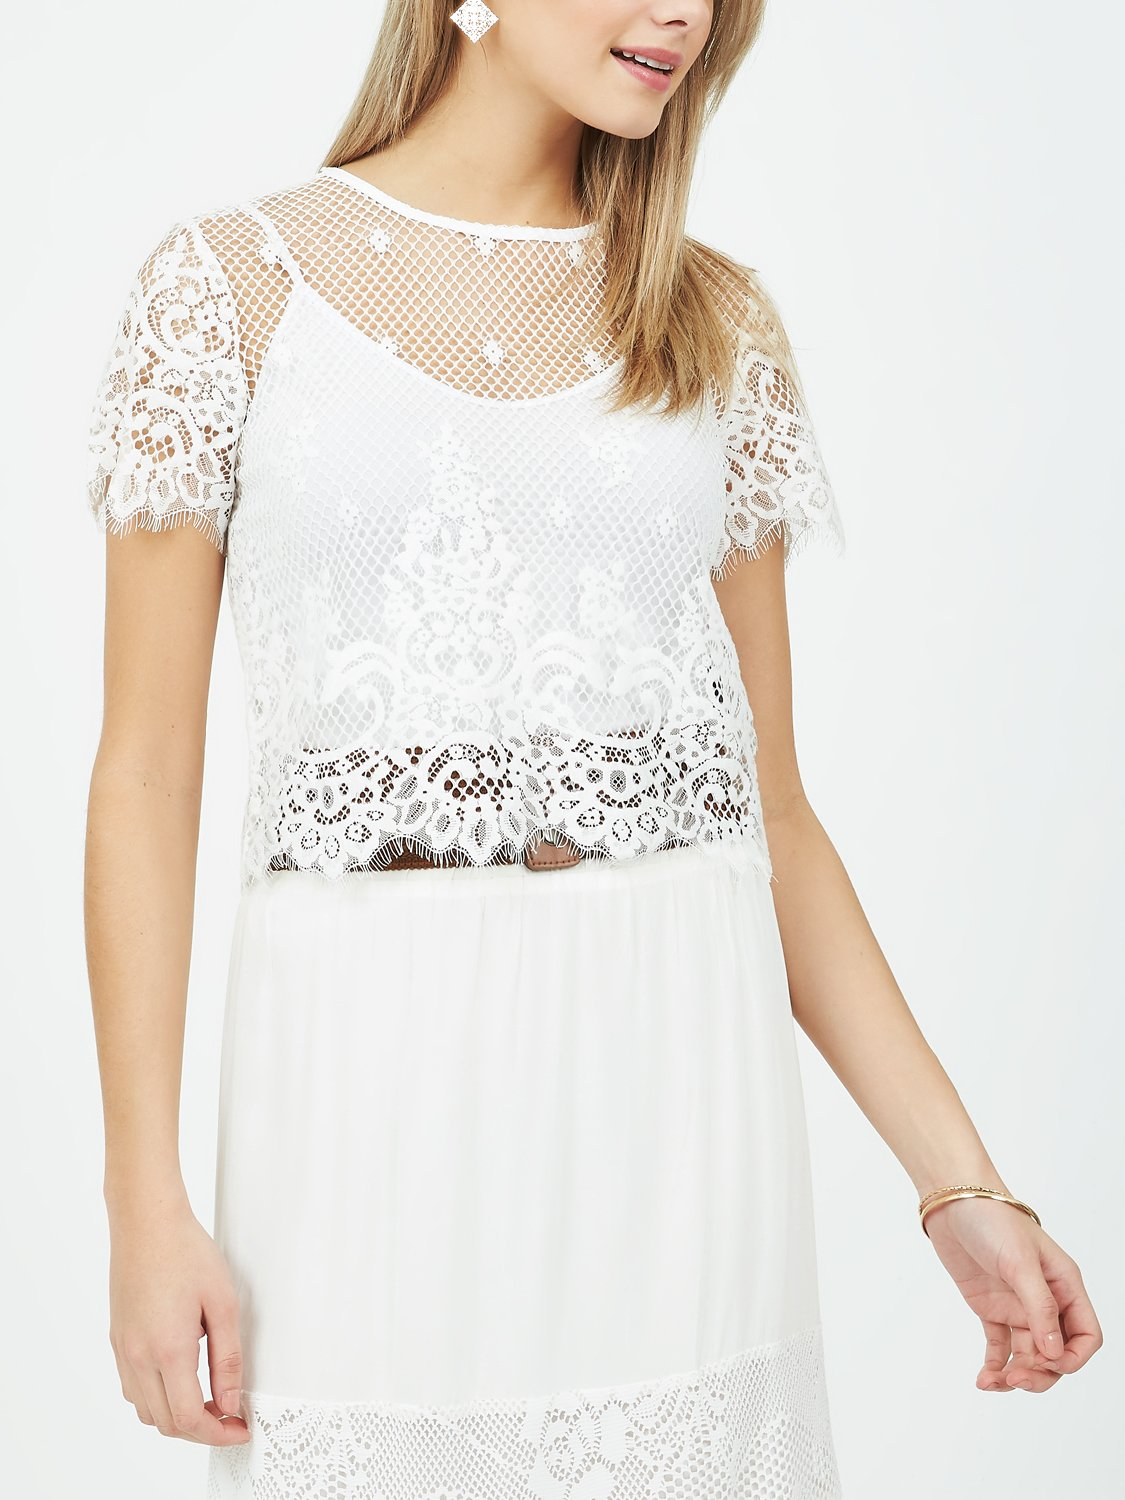 Copy of Fishnet Scalloped Lace T-Shirt